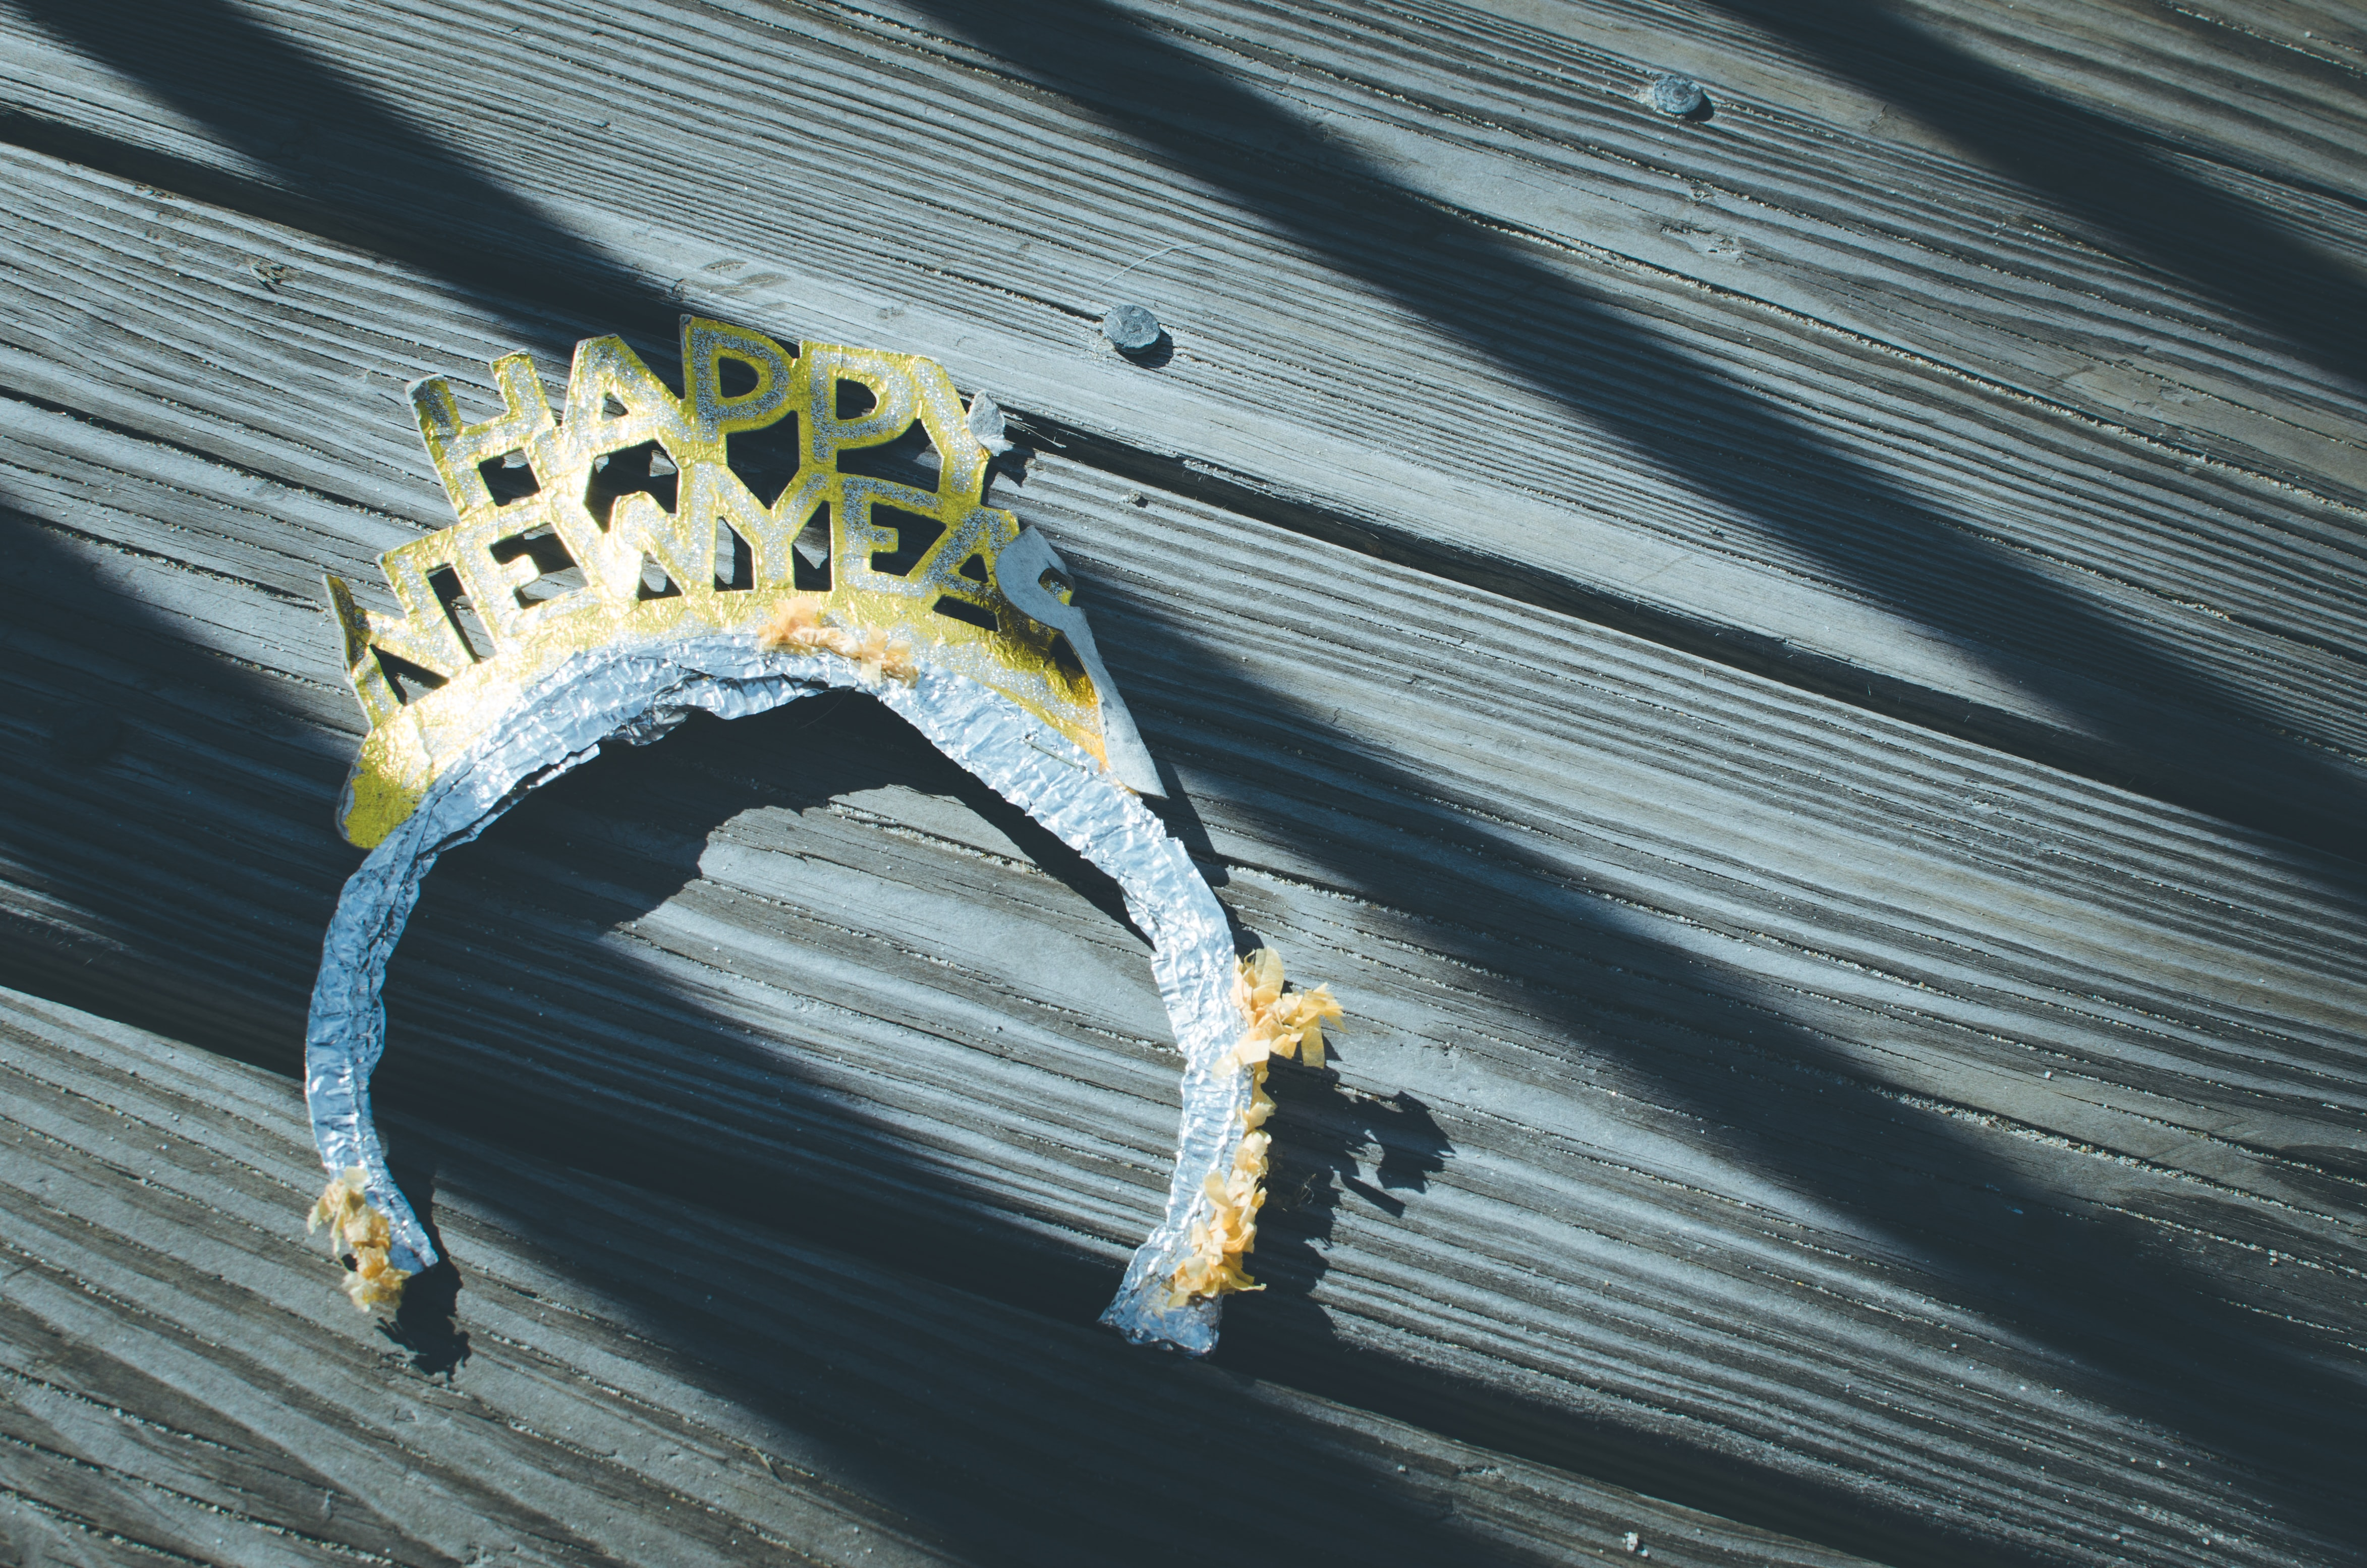 A discarded old Happy New Year headband on wooden floorboards, Ocean City